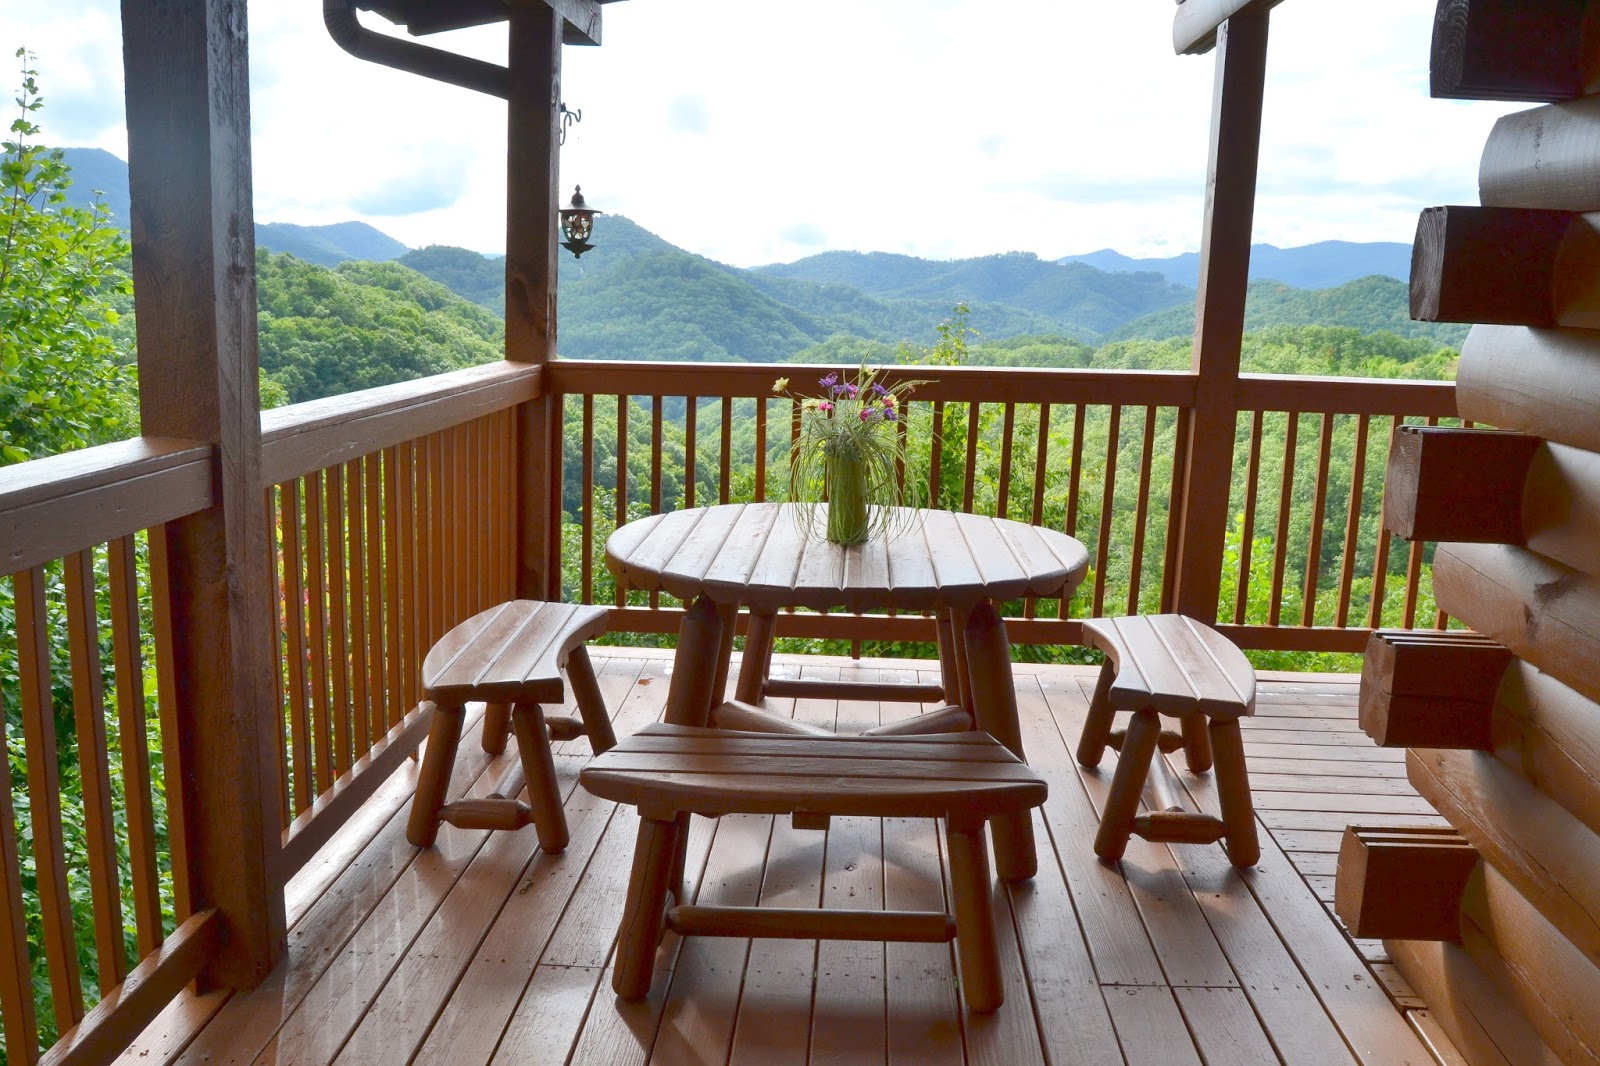 pigeon cabin heavenly view deck valley bedroom forge wears gatlinburg tub tn cabins smoky mountain rentals gh hot friendly pet